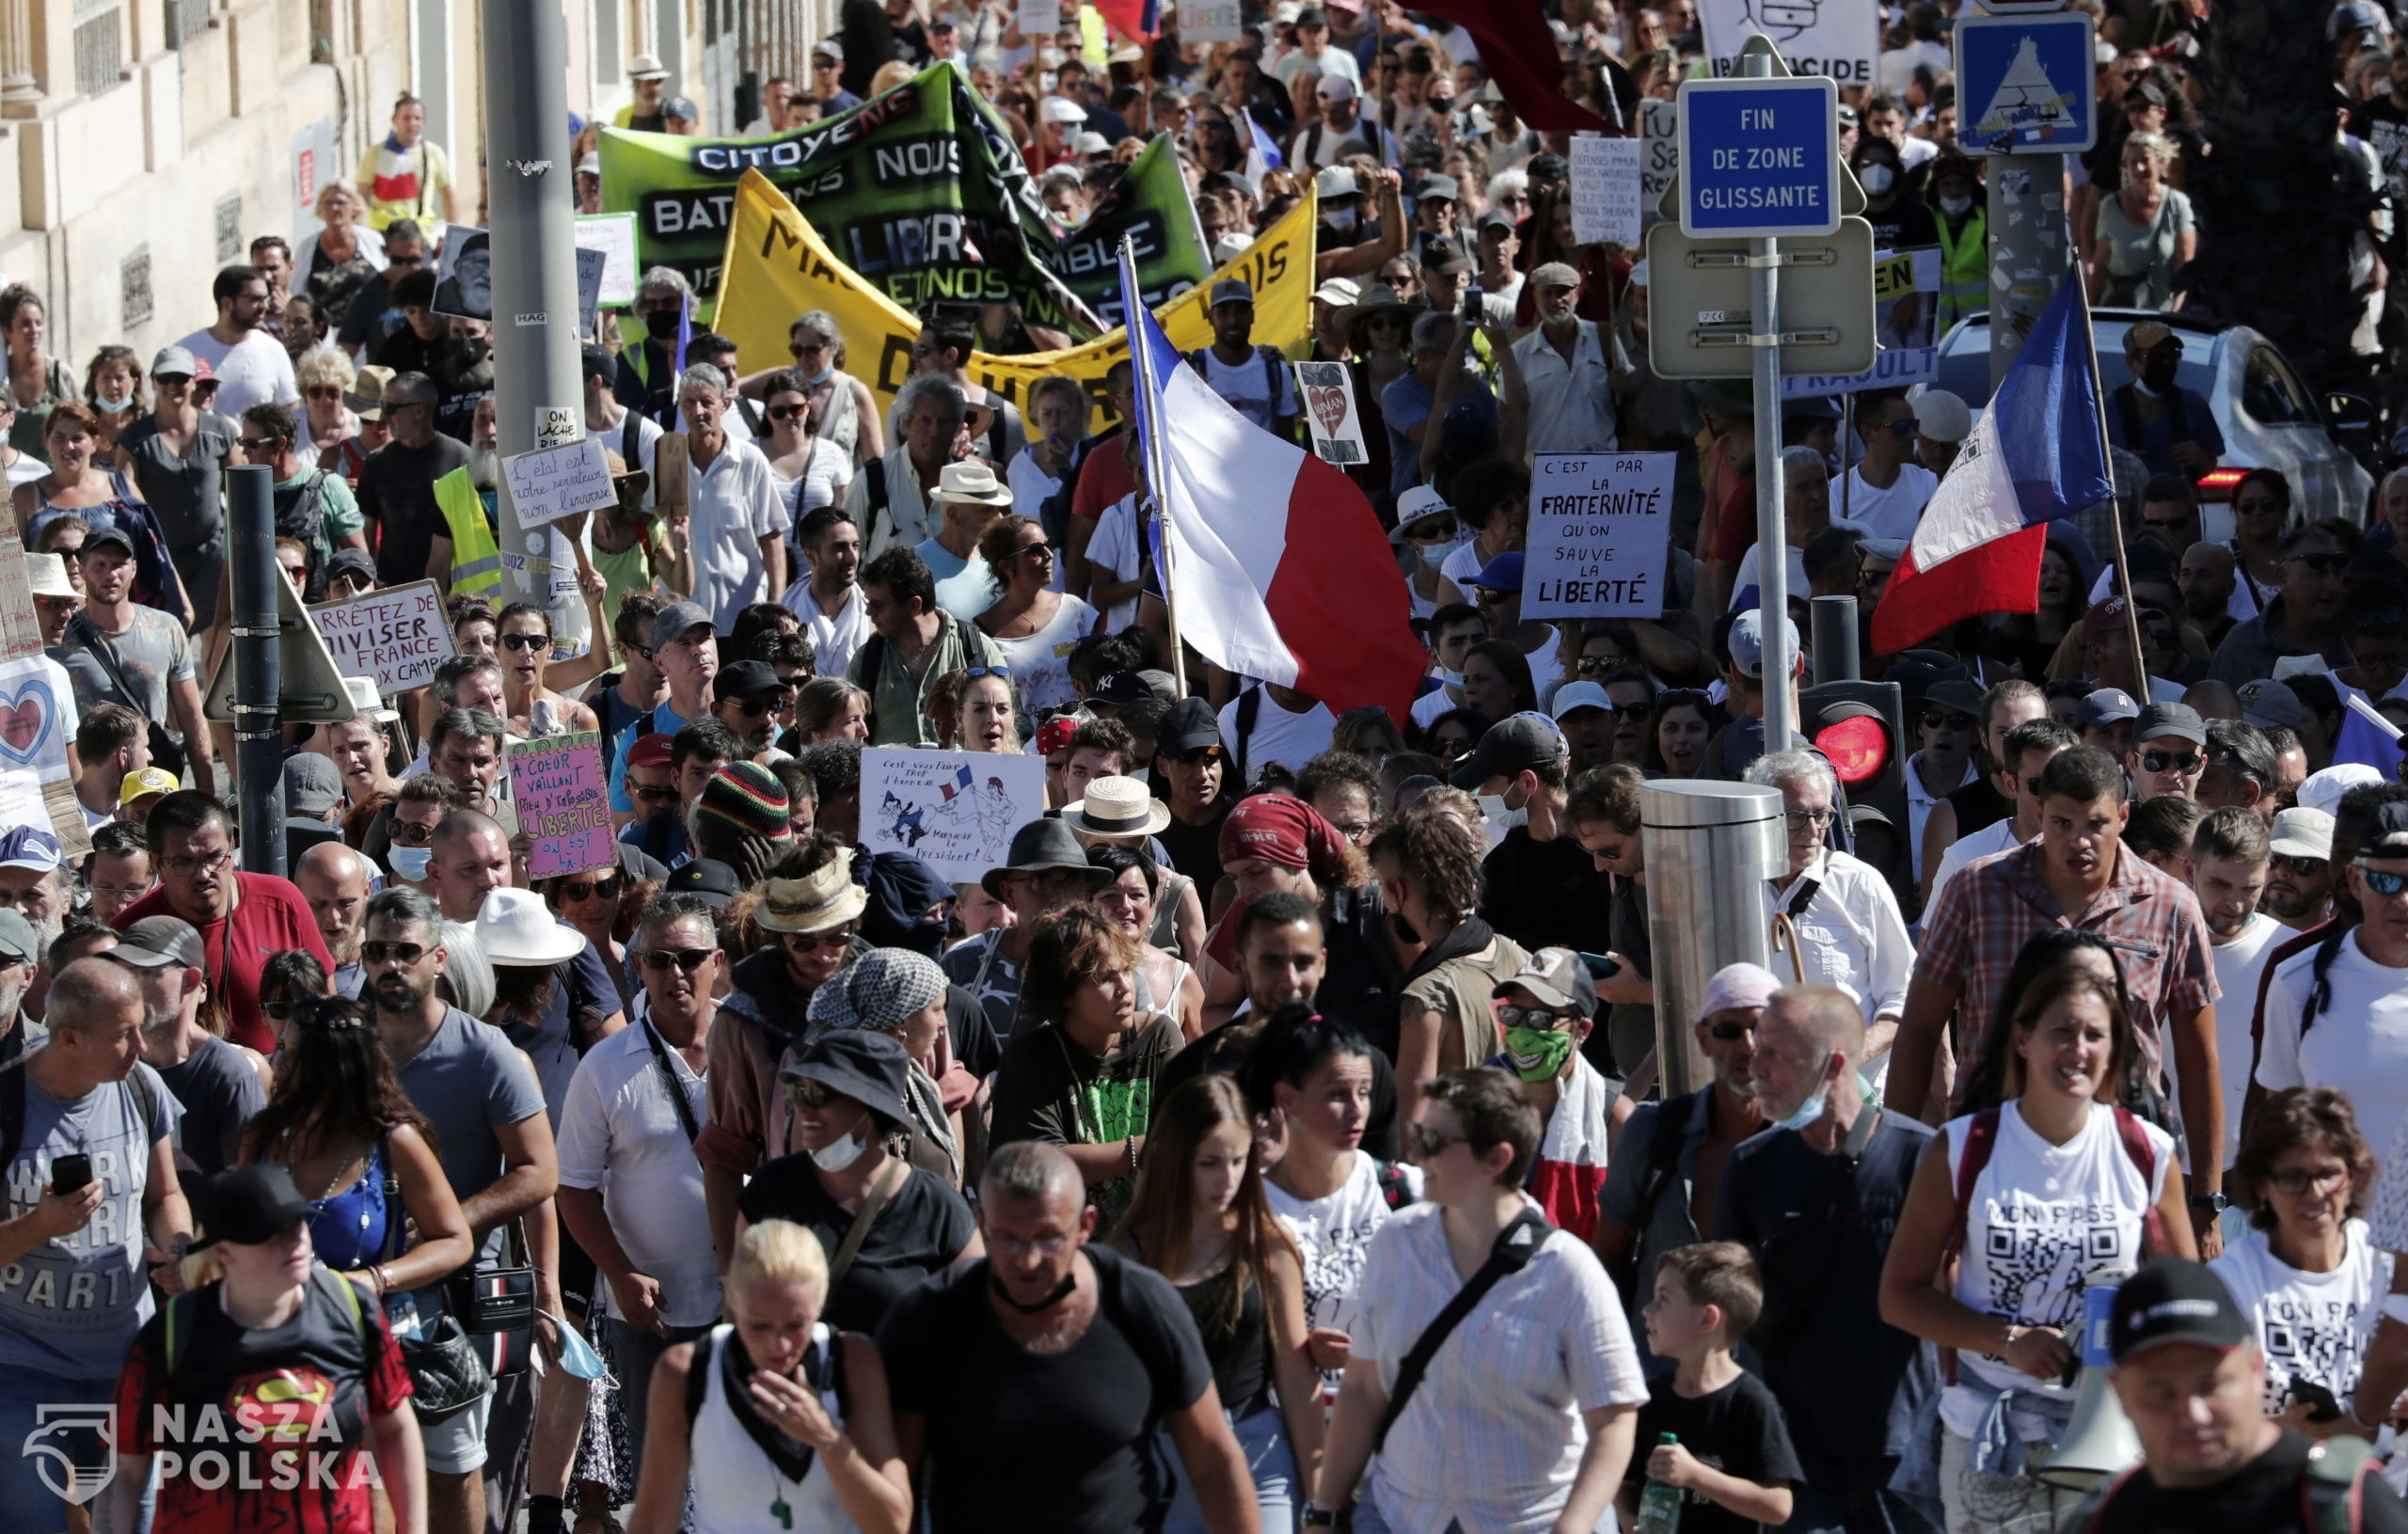 epa09434178 Protesters during a demonstration against the COVID-19 sanitary pass, which grants vaccinated individuals greater ease of access to venues, in Montpellier, France, 28 August 2021. For the seventh consecutive week, thousands of French demonstrators have taken to the streets in several cities across the country to protest against measures to curb the spread of coronavirus.  EPA/GUILLAUME HORCAJUELO  Dostawca: PAP/EPA.